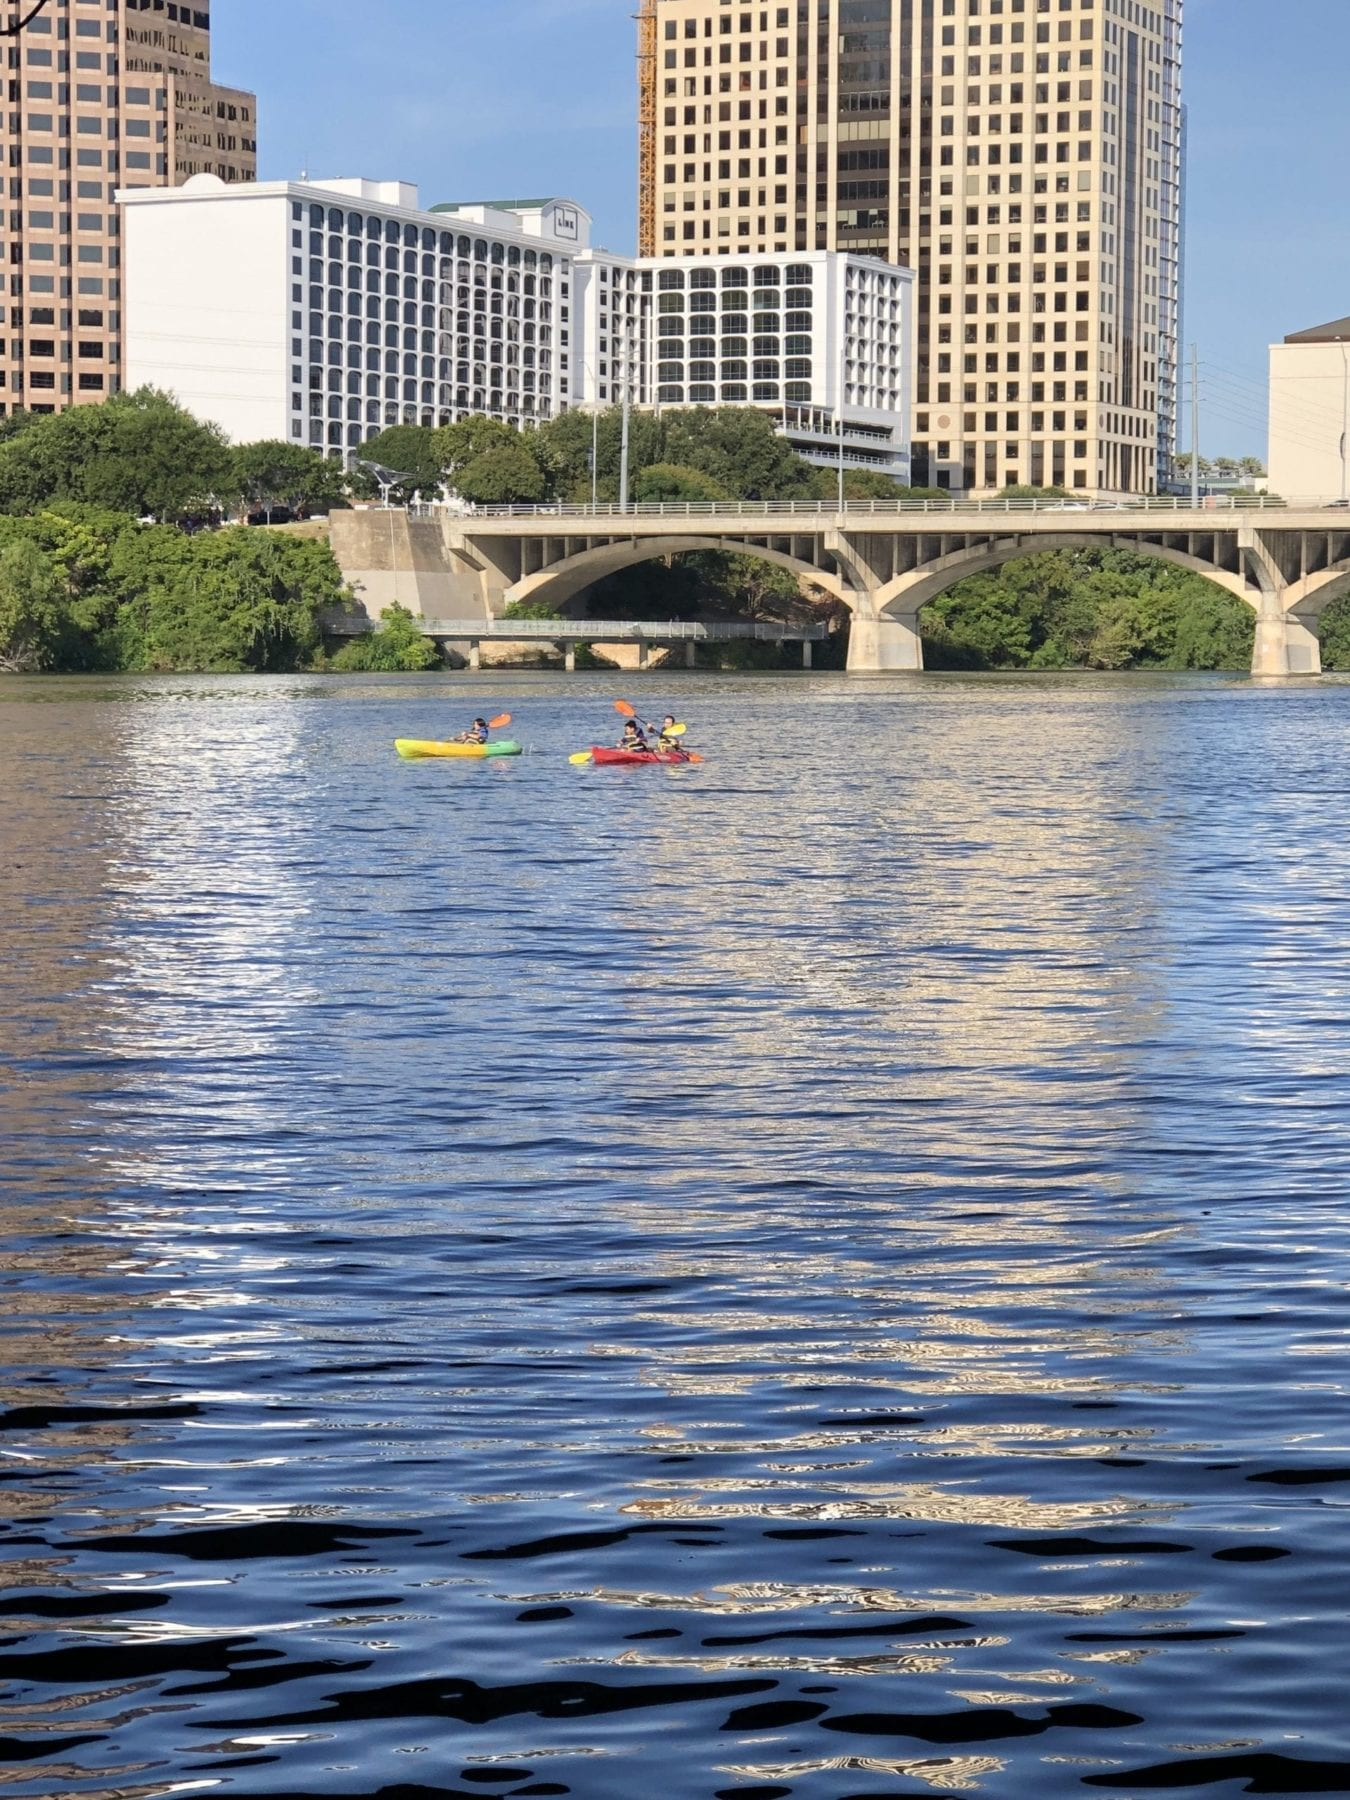 congress bridge and lady bird lake